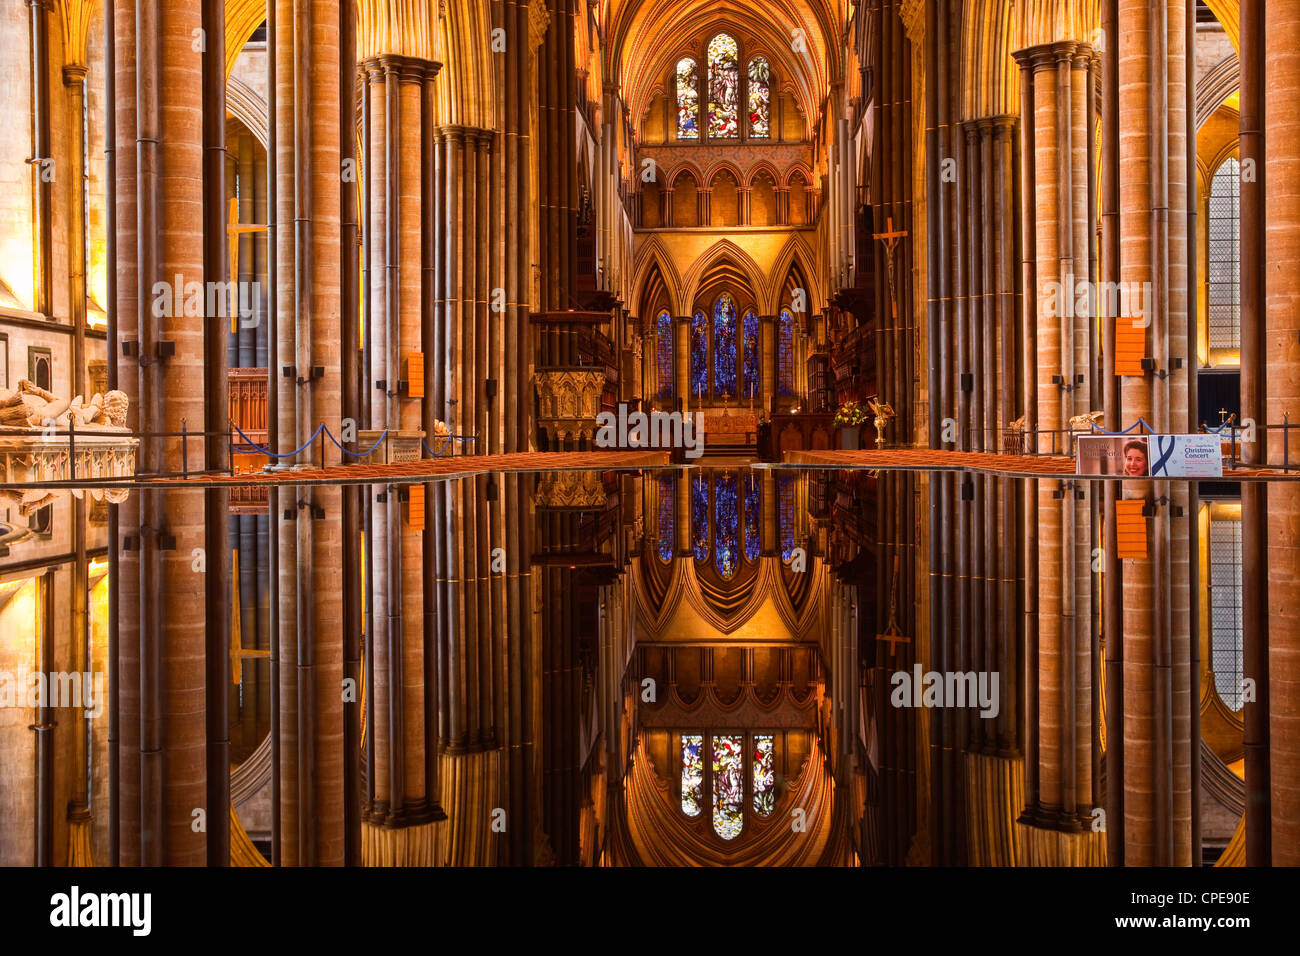 The beautiful nave and font of Salisbury cathedral, Wiltshire, England, United Kingdom, Europe - Stock Image